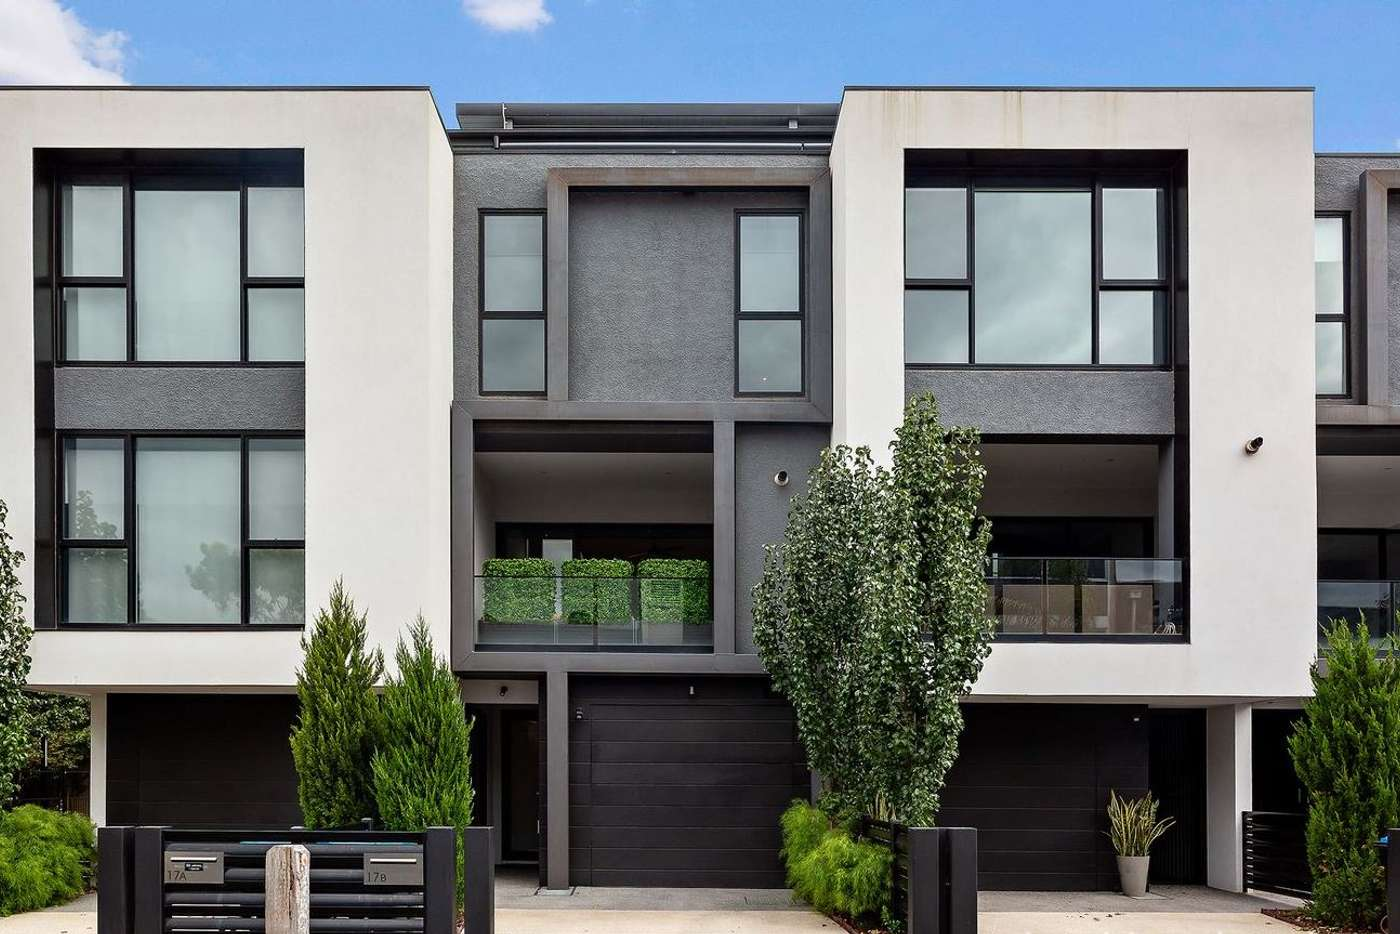 Main view of Homely house listing, 17B Balmoral Place, South Yarra VIC 3141